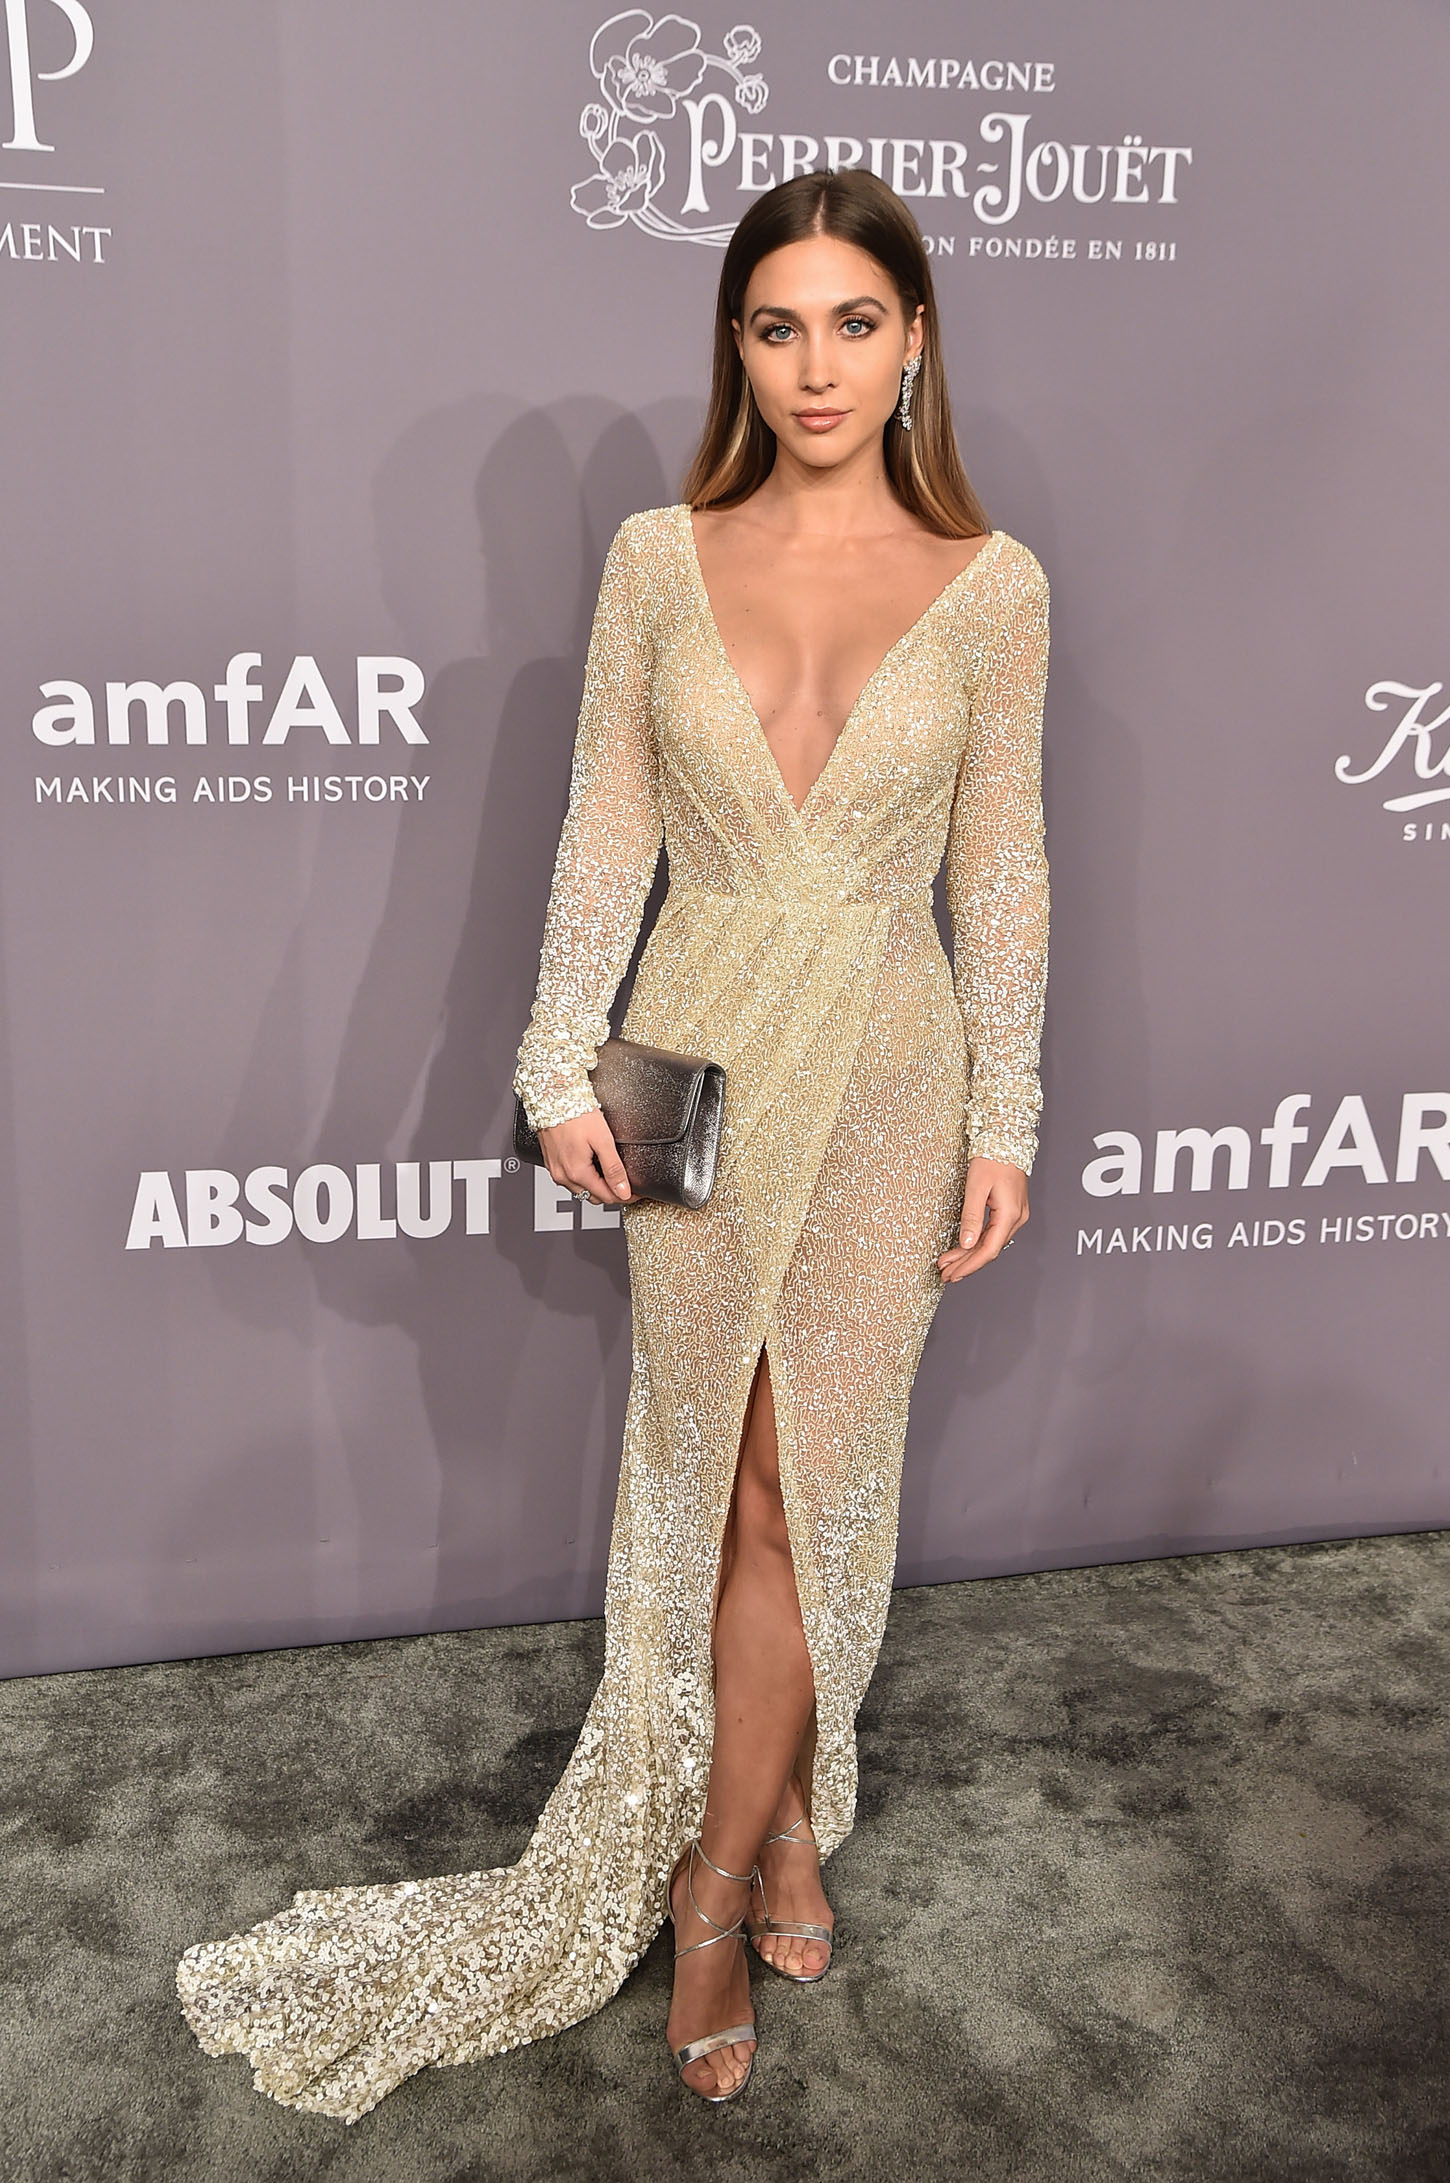 NEW YORK, NY - FEBRUARY 07:  Model Ann-Kathrin Vida attends the 2018 amfAR Gala New York at Cipriani Wall Street on February 7, 2018 in New York City.  (Photo by Theo Wargo/Getty Images)